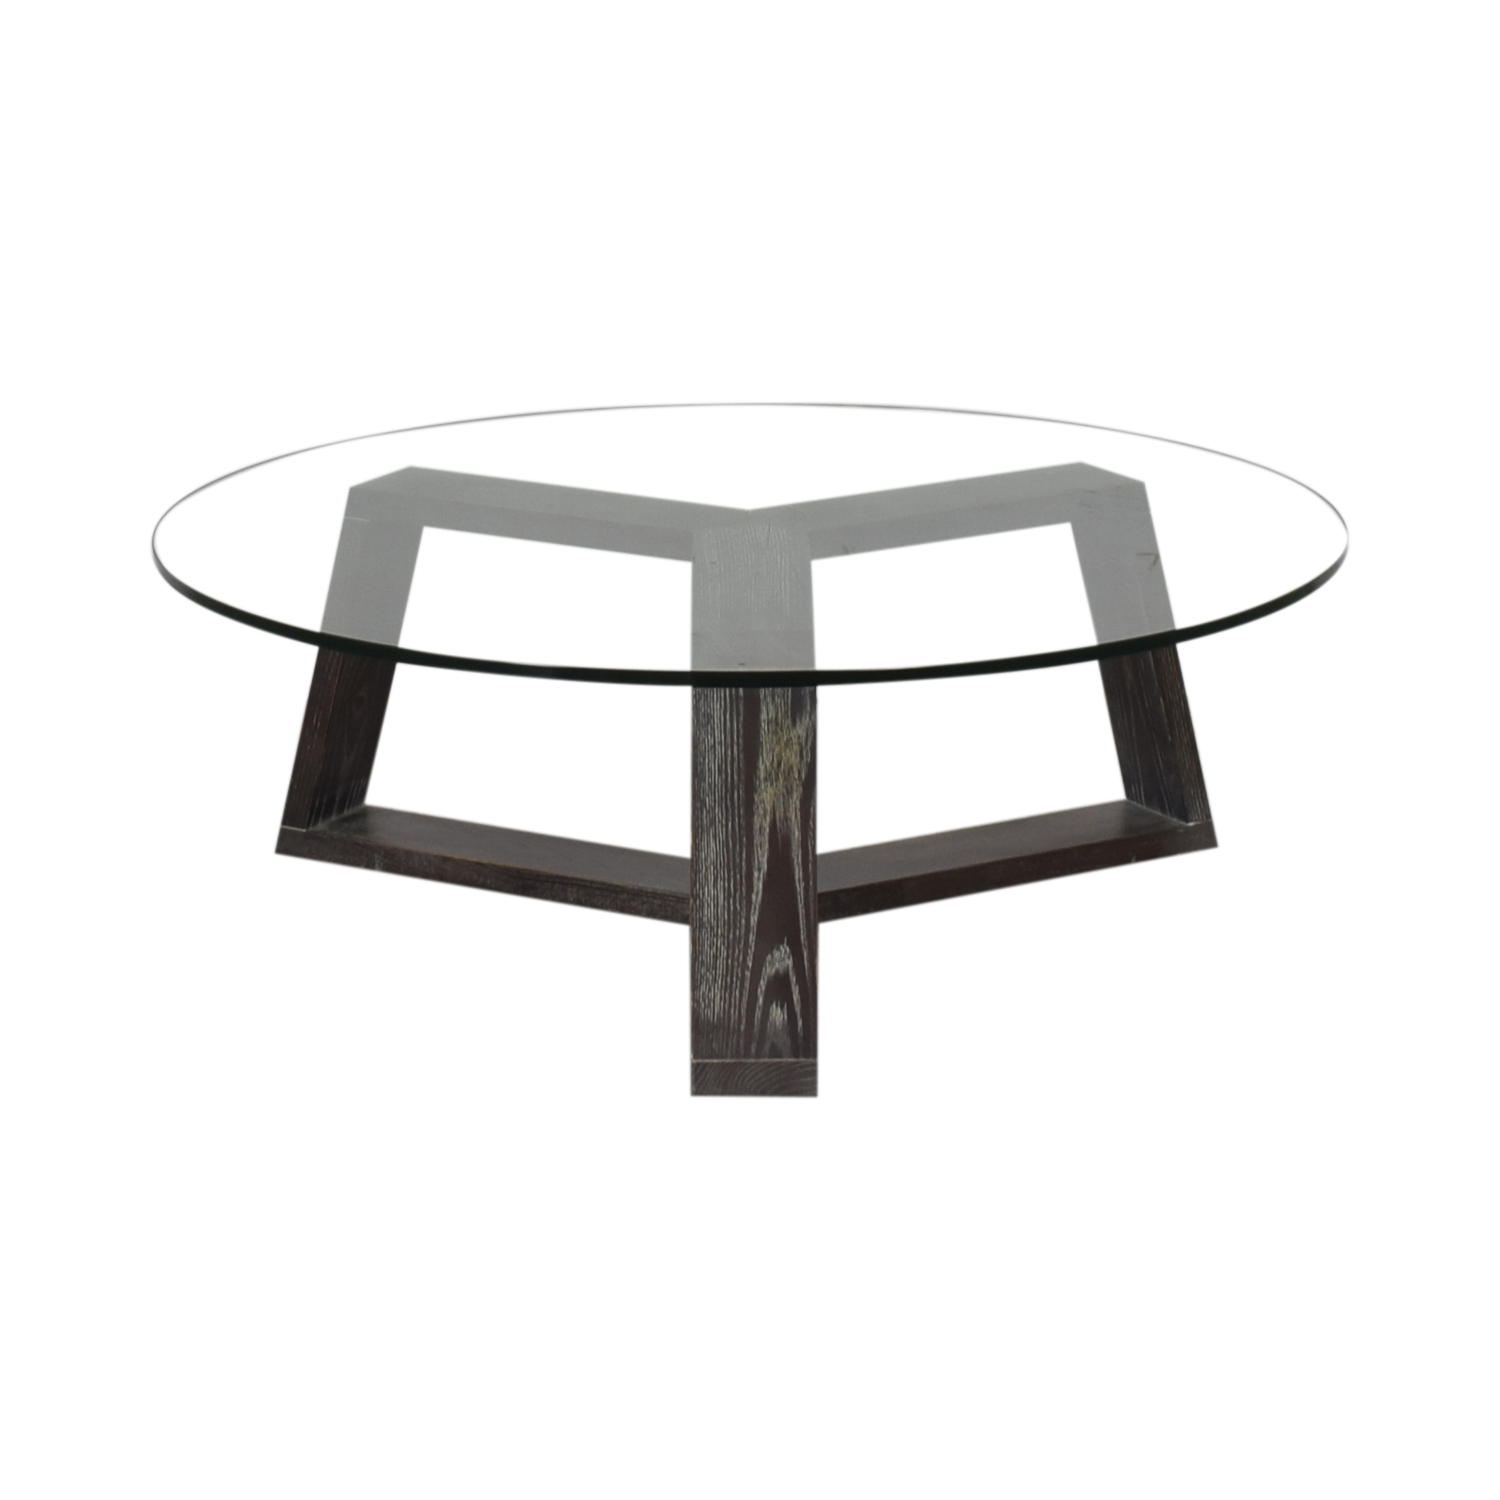 West Elm West Elm Round Glass Coffee Table dimensions